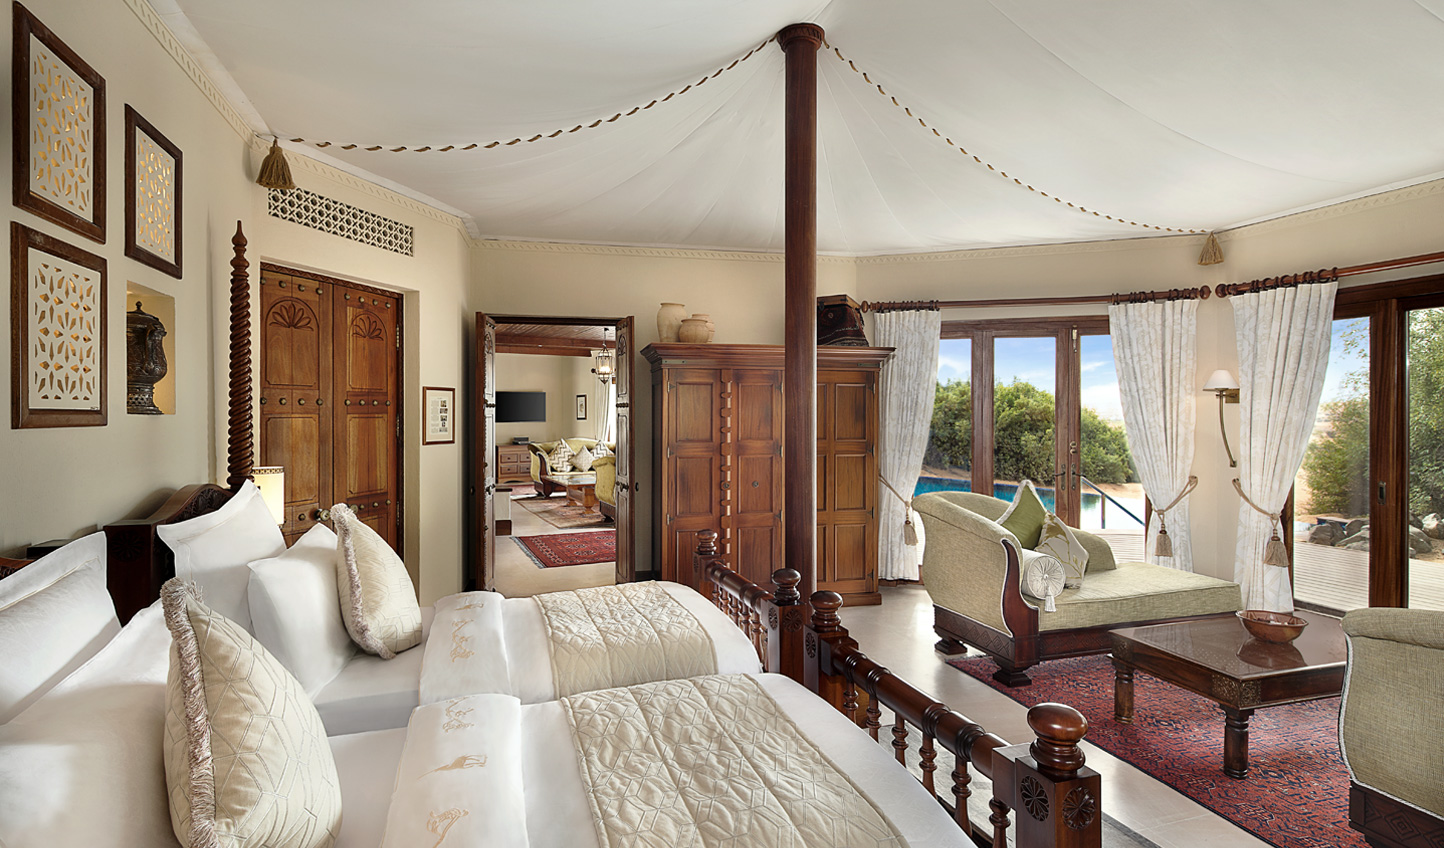 The Emirates guest room exudes Arabian flair with dark-wood furnishings and a canopy ceiling